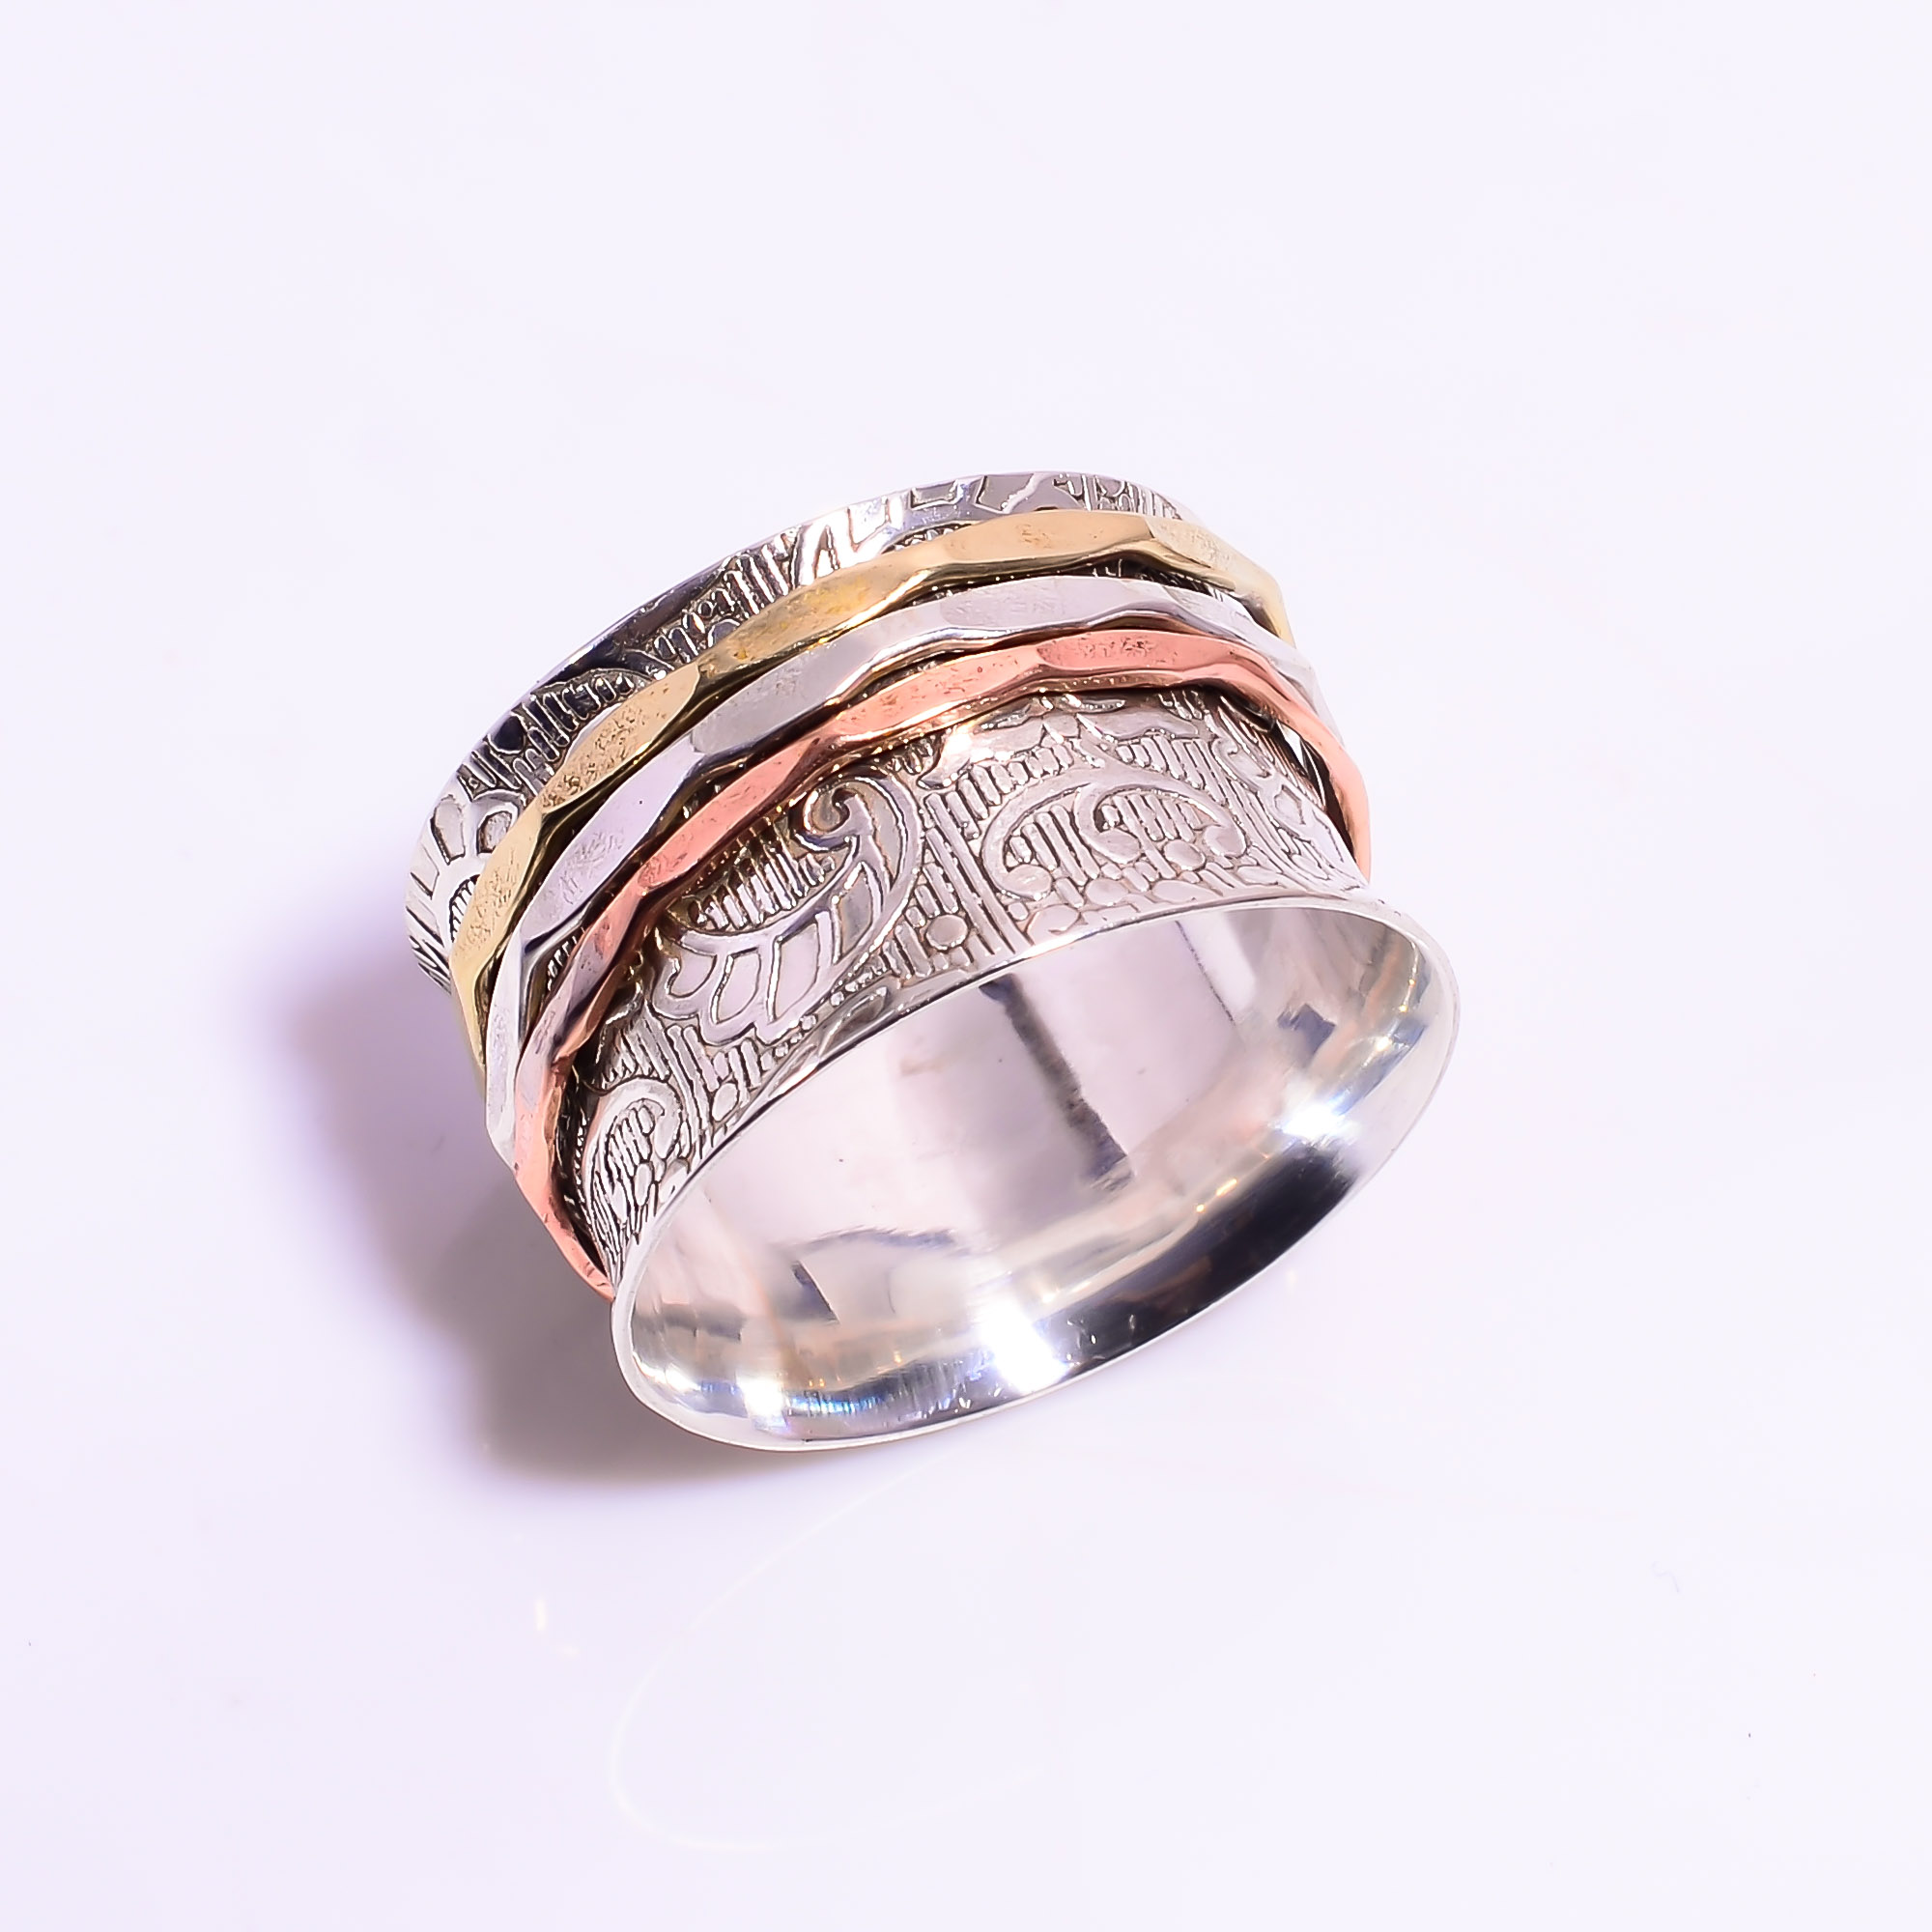 925 Sterling Silver Meditation Spinner Ring Size US 11